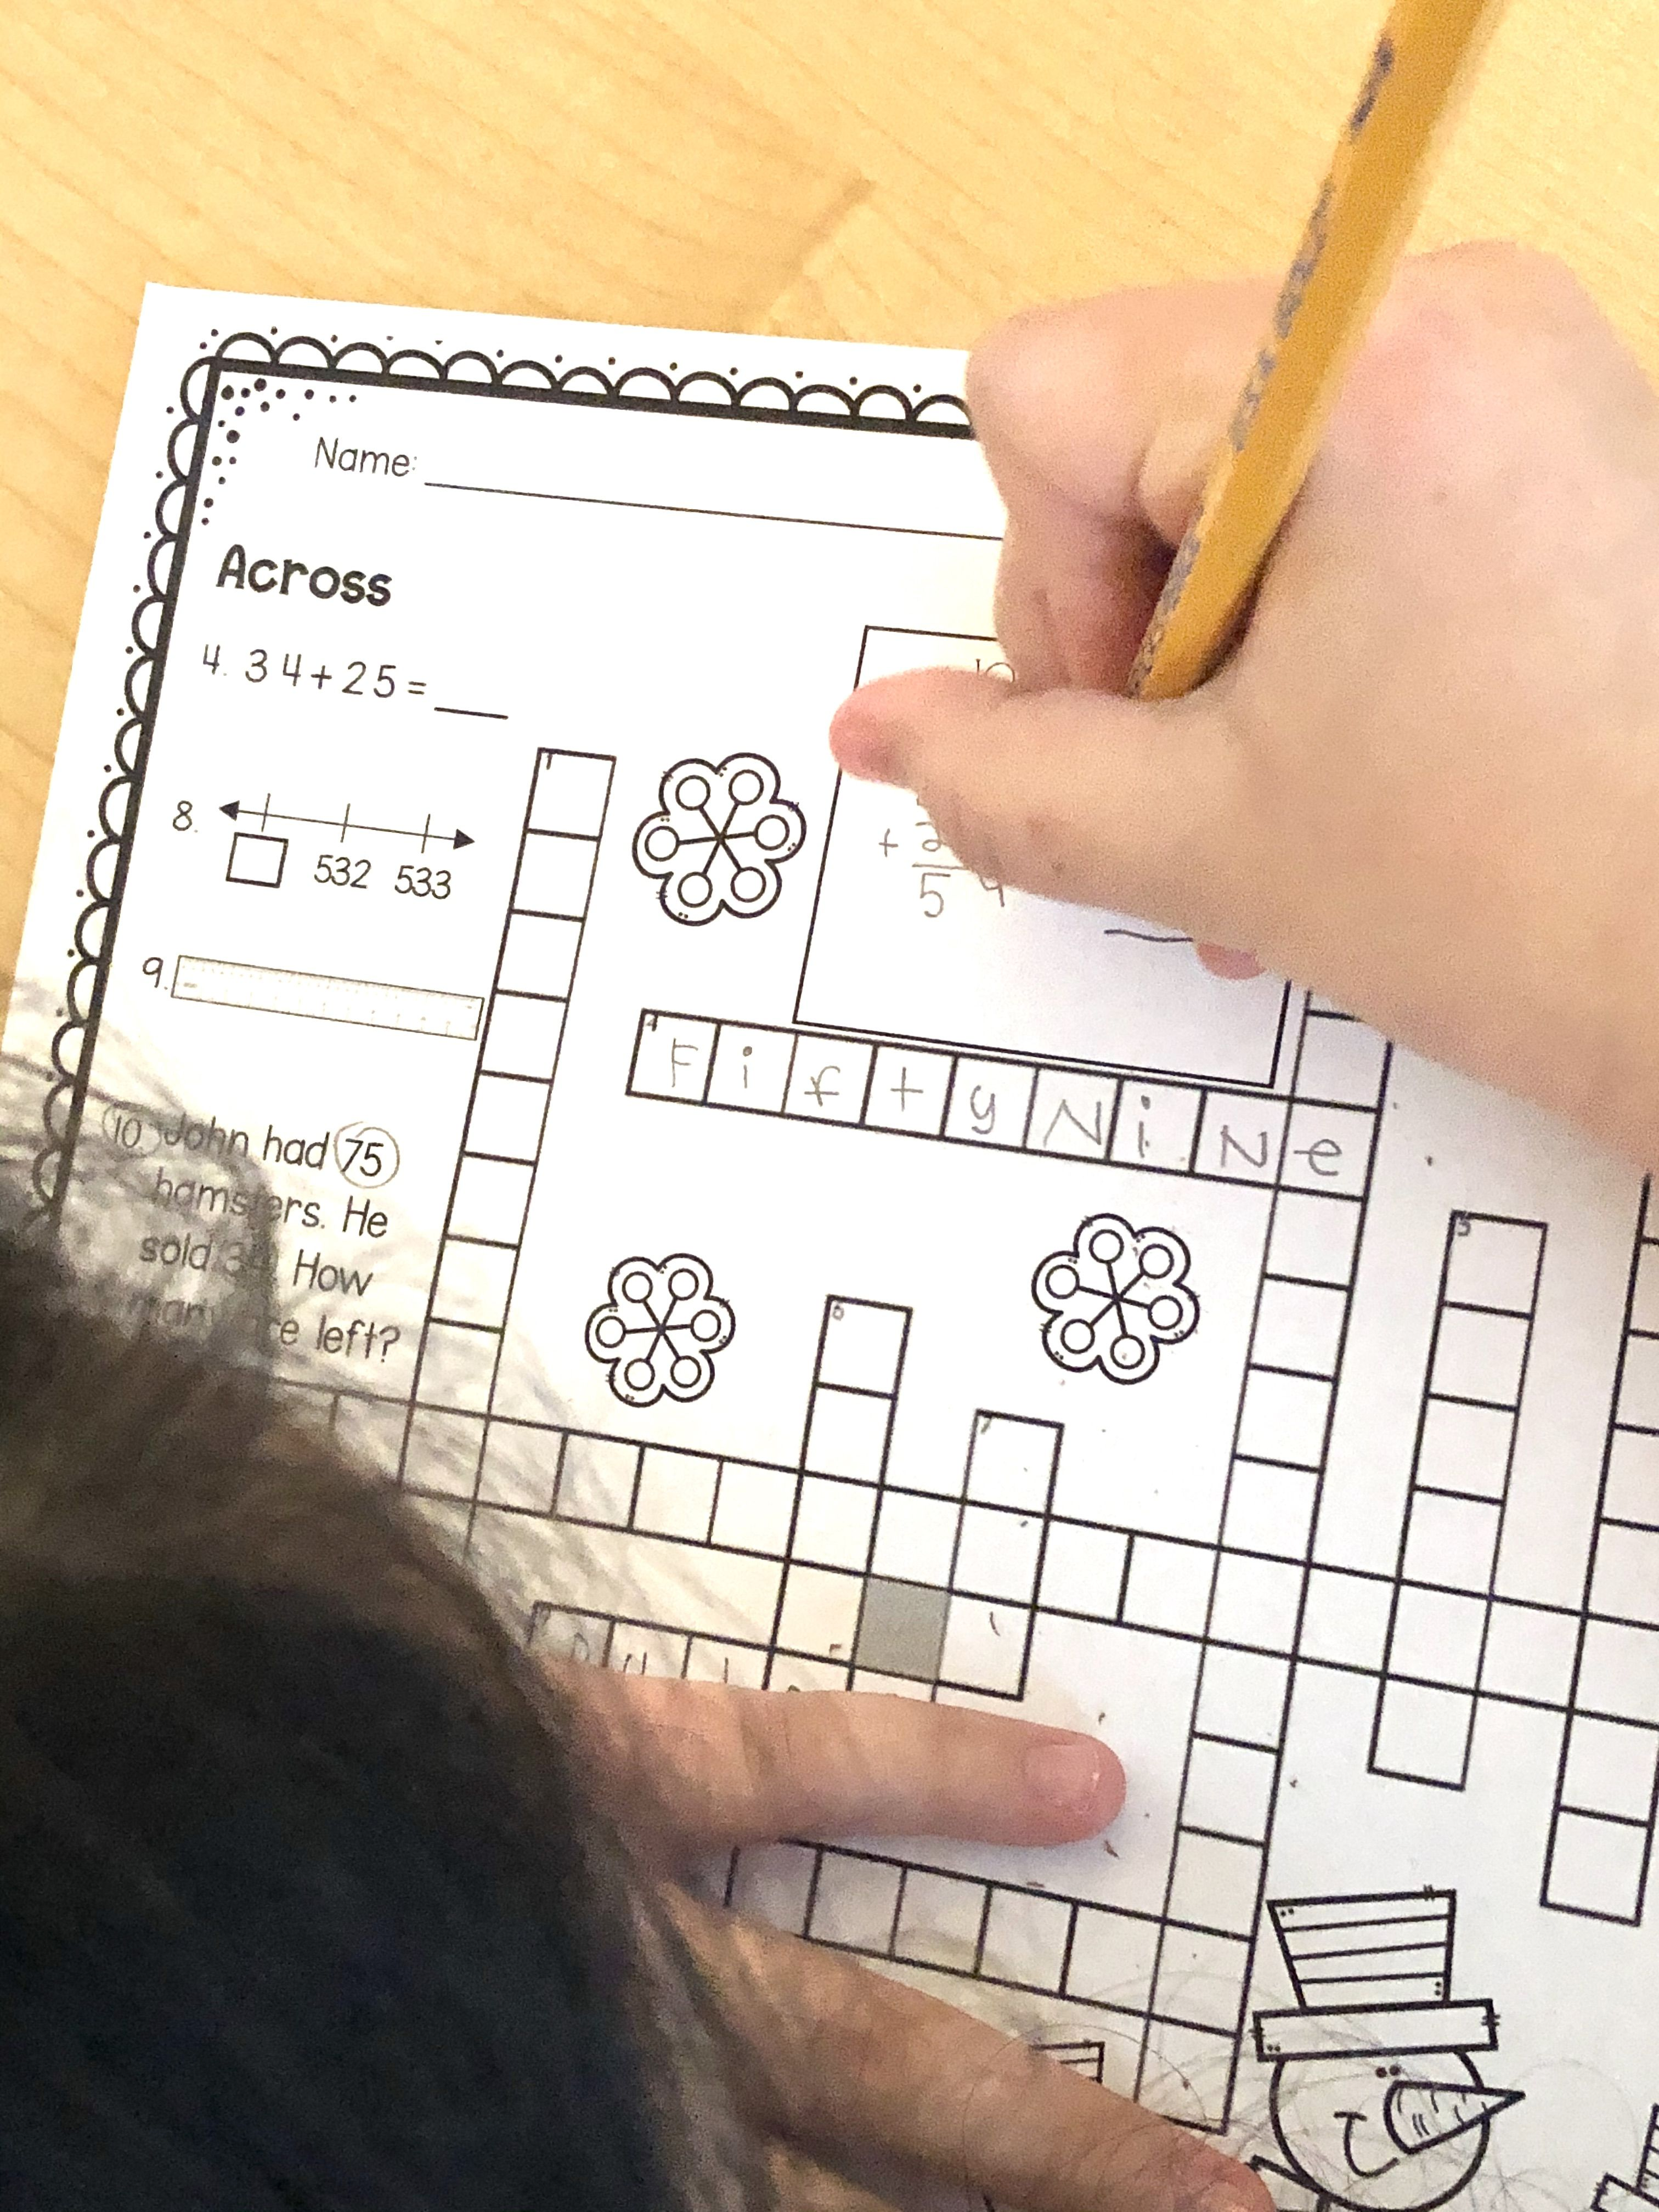 Awordpresssite Just Another Wordpress Site Math Blog Logic And Critical Thinking Graphing Activities